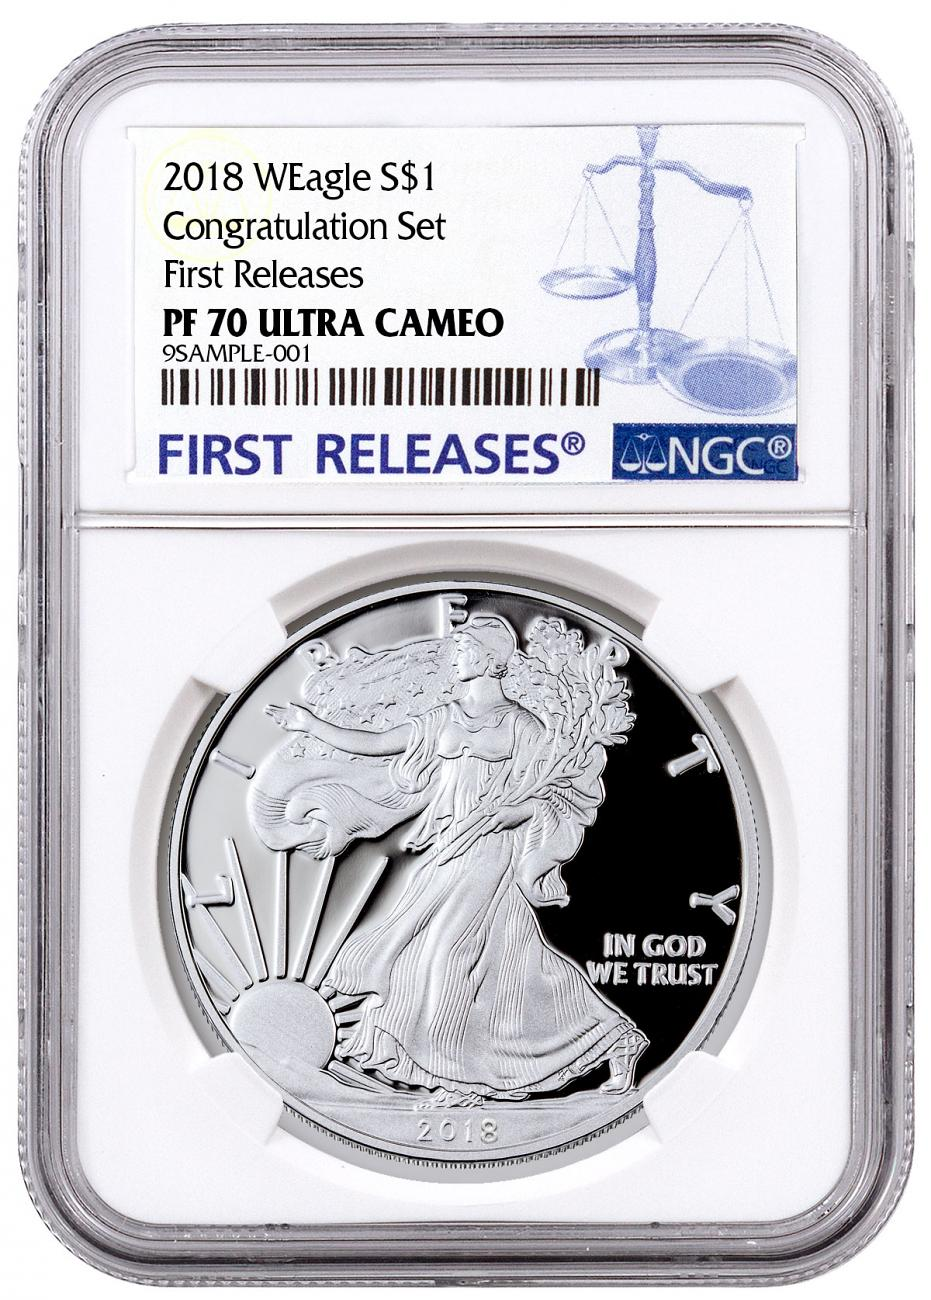 2018-W Proof American Silver Eagle Congratulations Set NGC PF70 UC FR